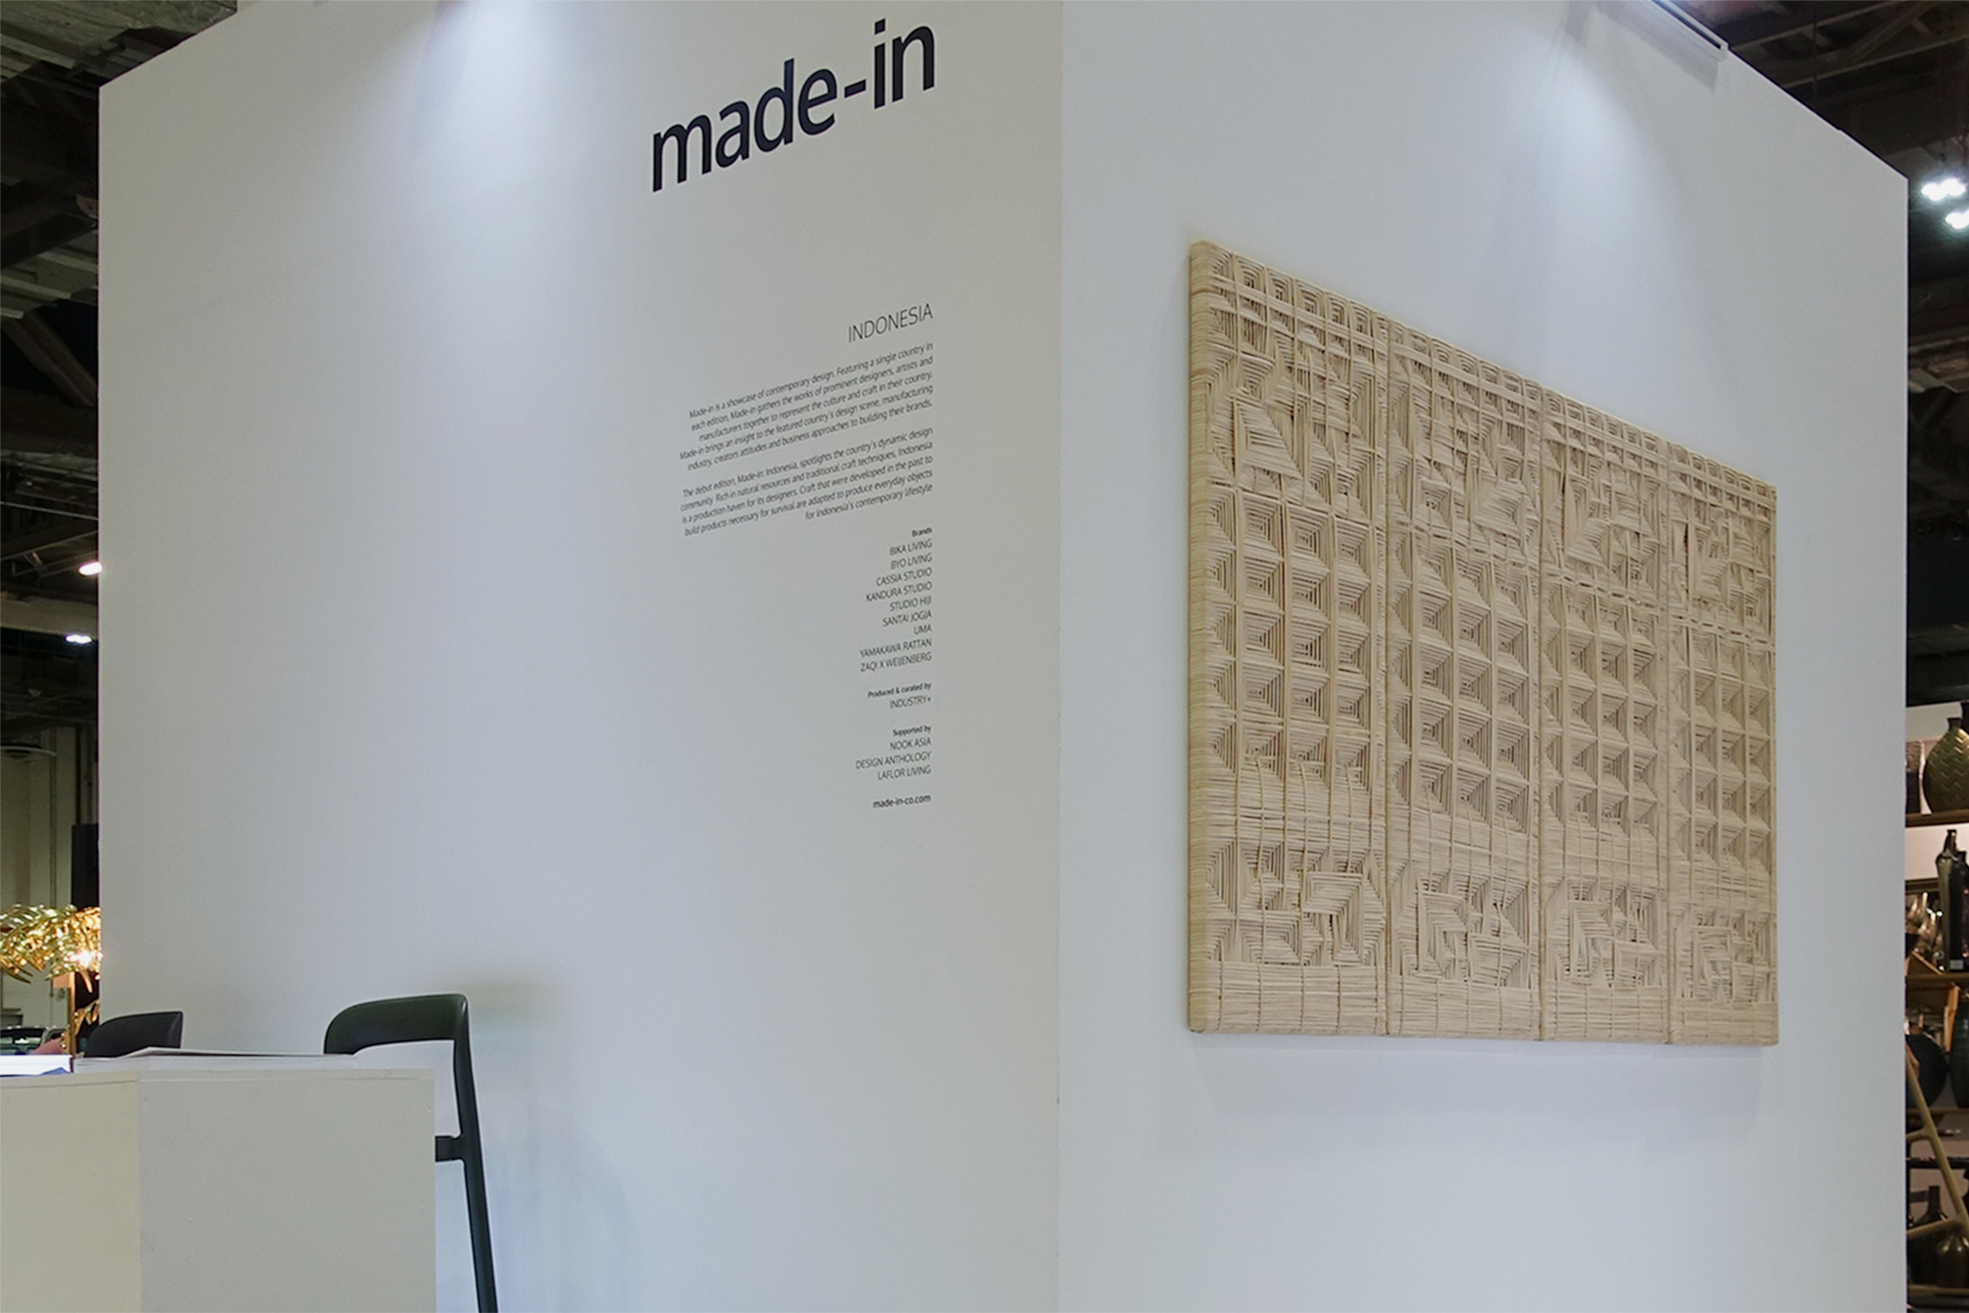 Made-in: Indonesia